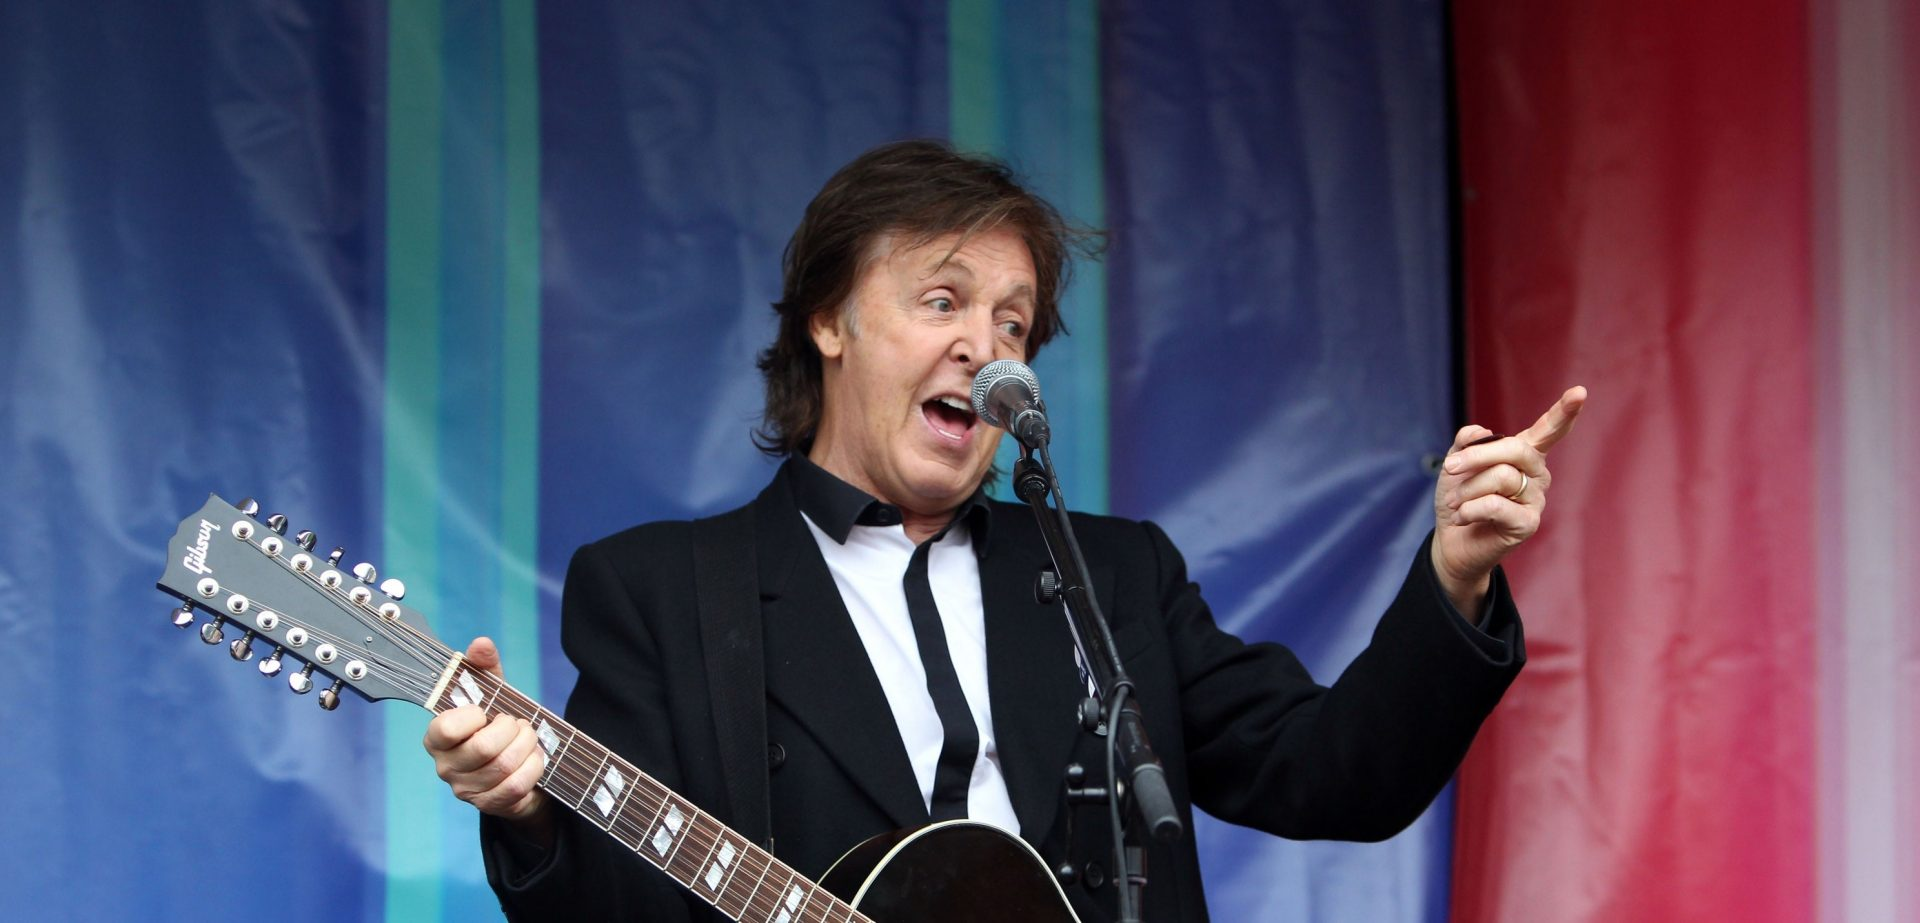 Sir Paul McCartney reveals he has a 'secret' Christmas album for his family